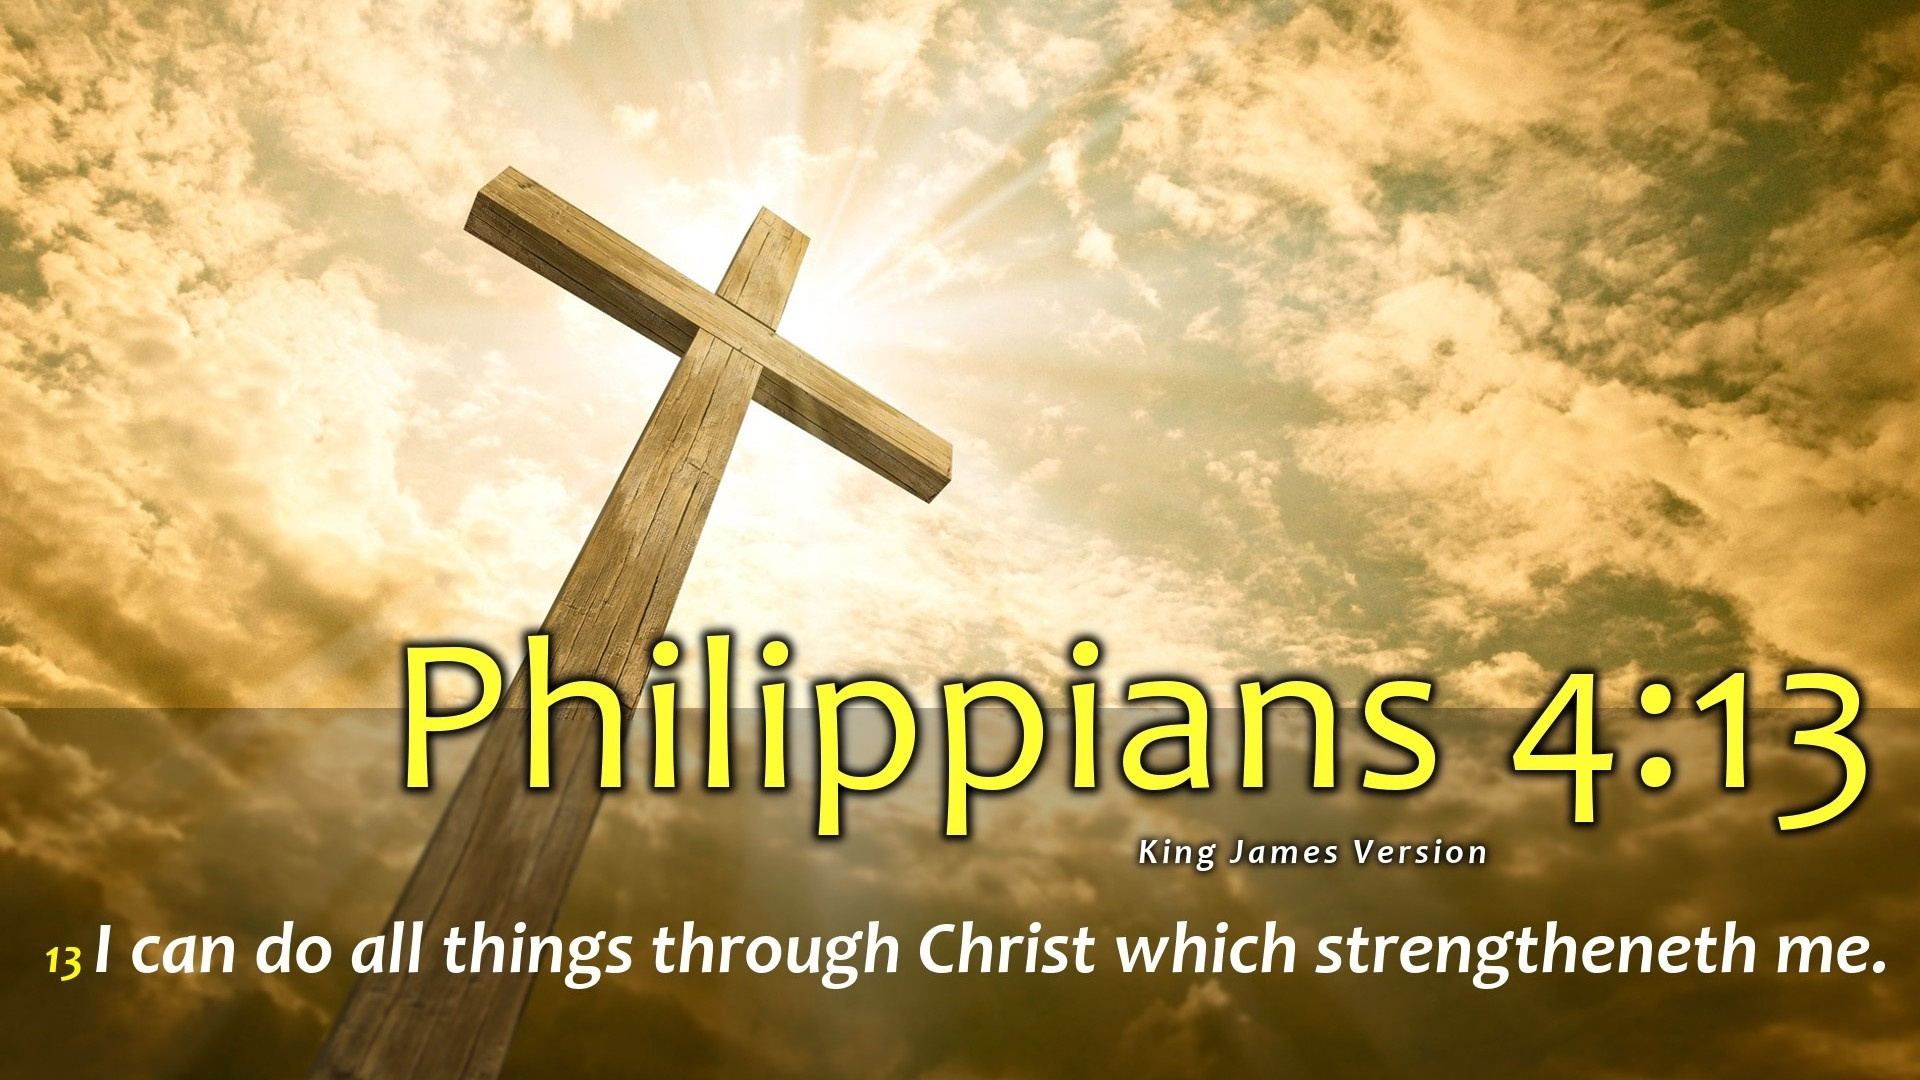 Bible Verses Pictures Set 05 - Jesus Christ Wallpapers Bible verses with pictures free